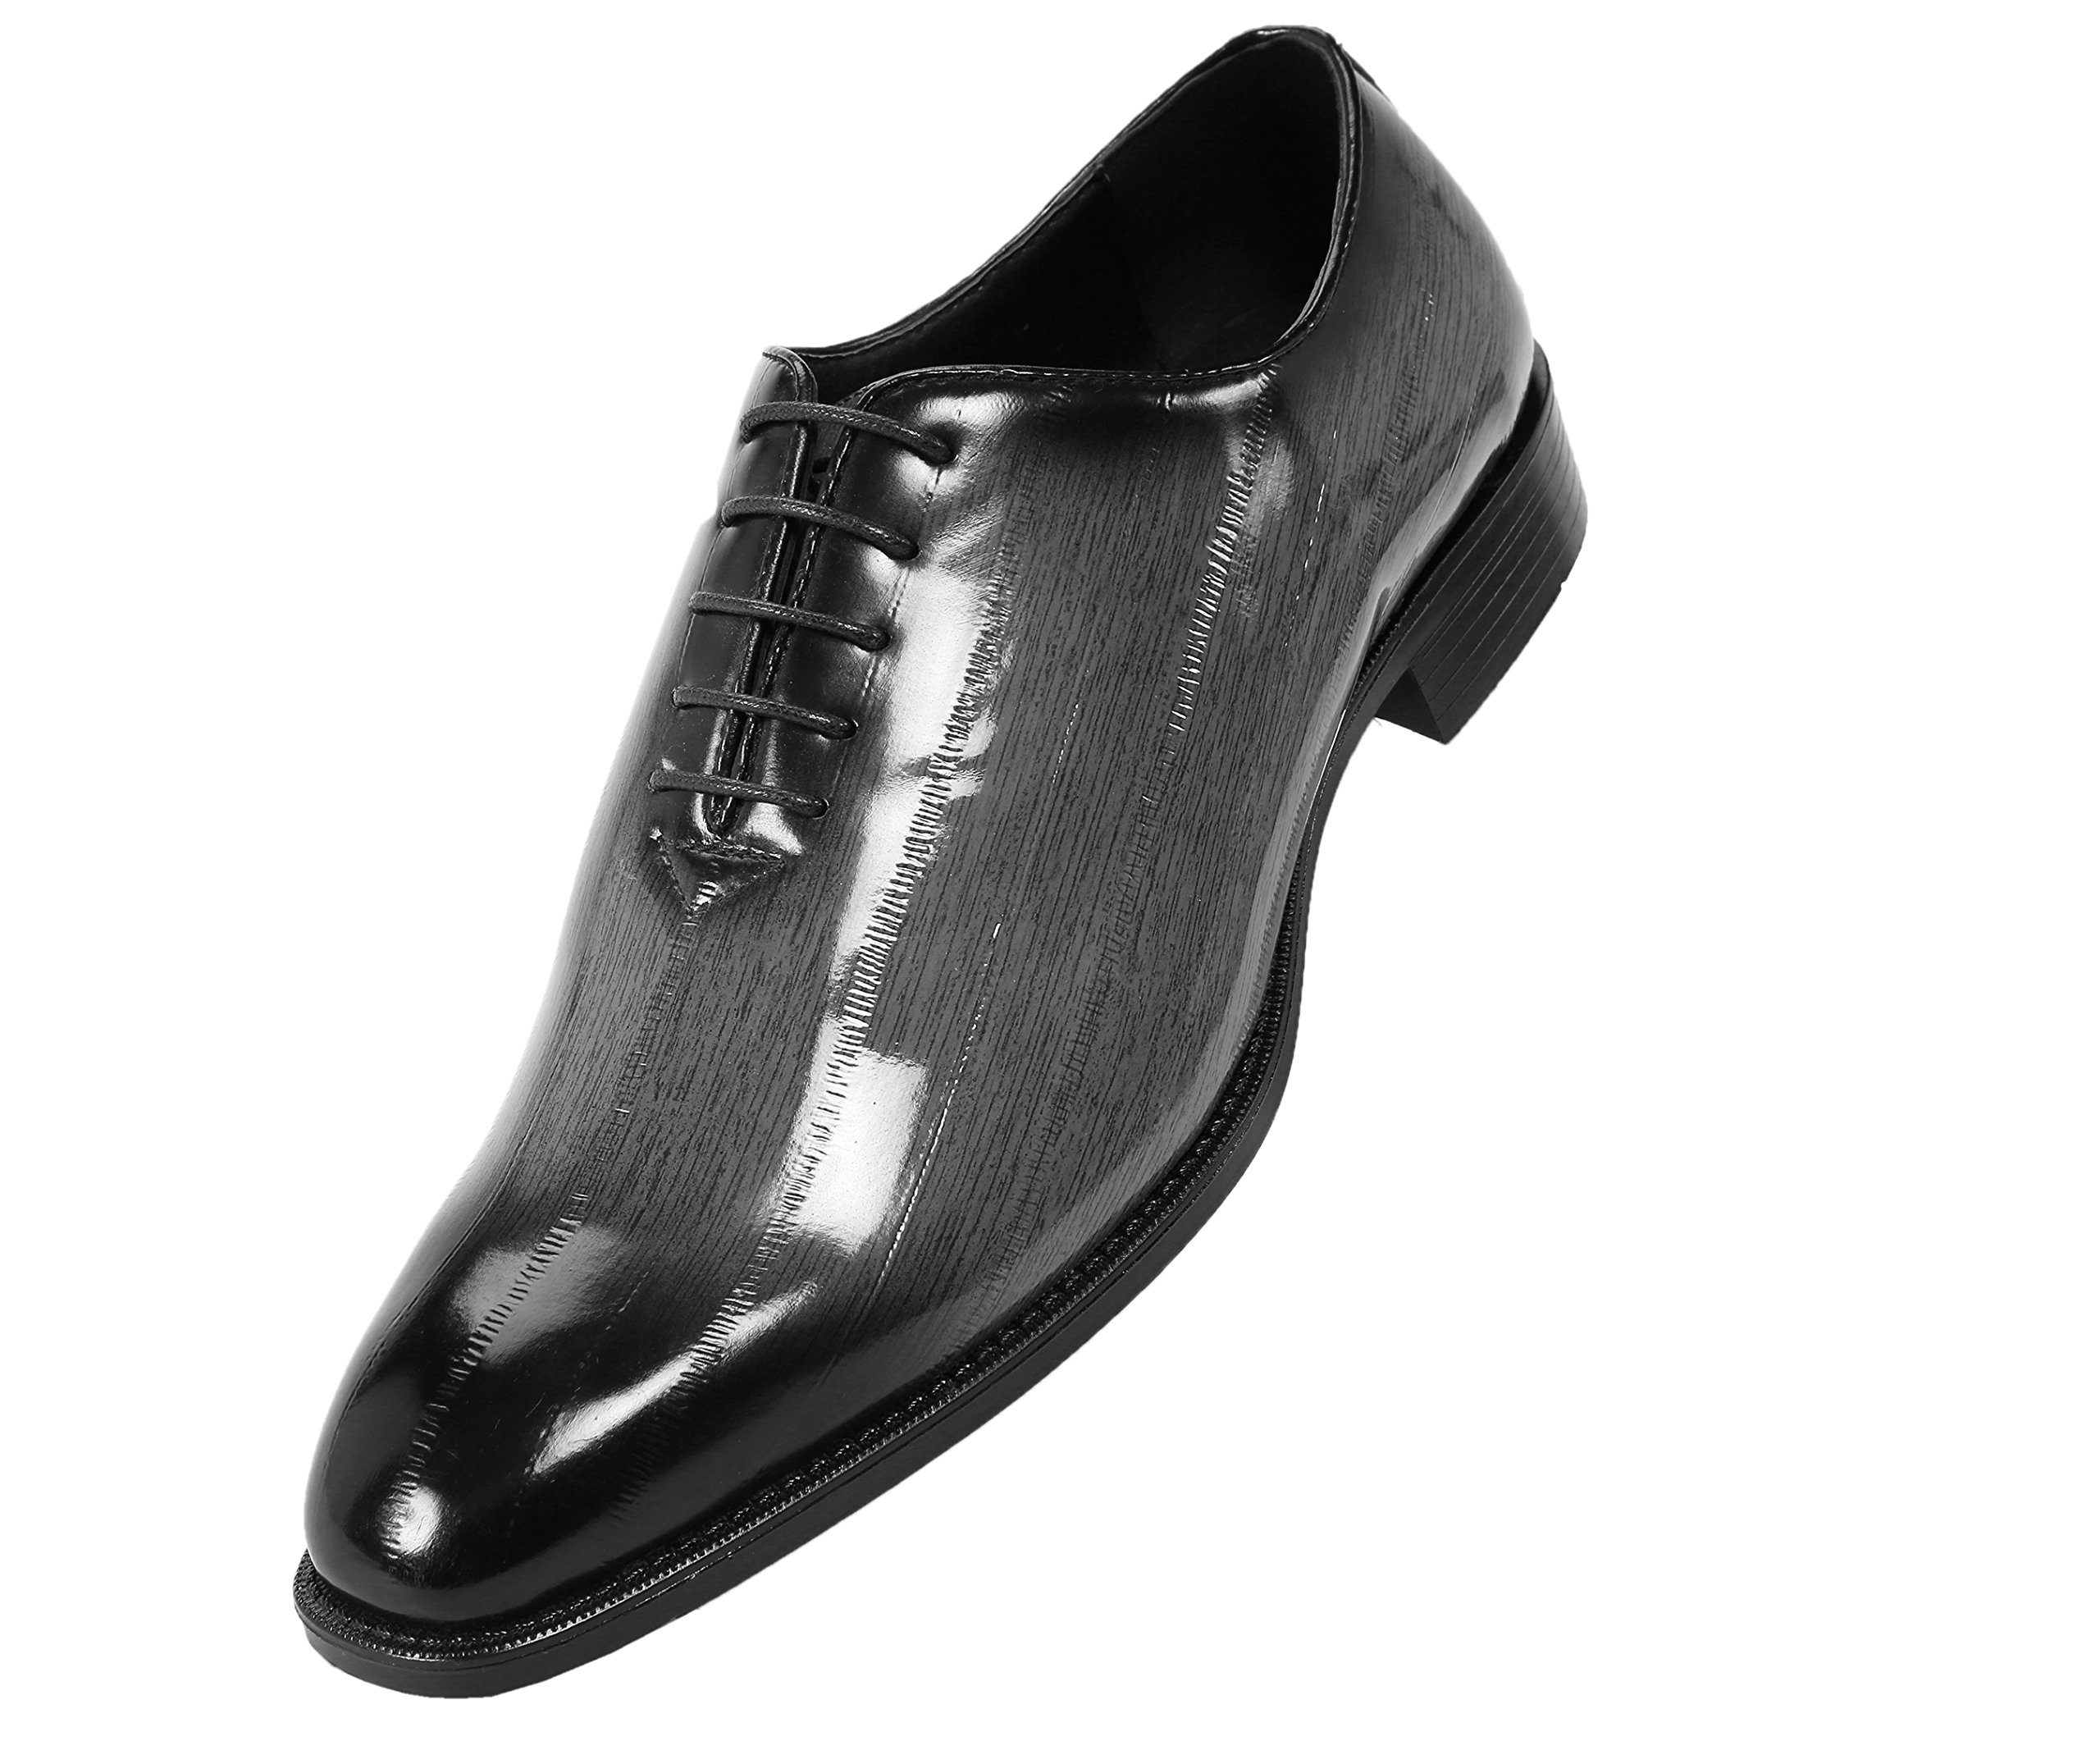 Bolano Mens Exotic Faux Eel Skin Printed Oxford Dress Shoe with Black Burnished Toe, Style Brayden